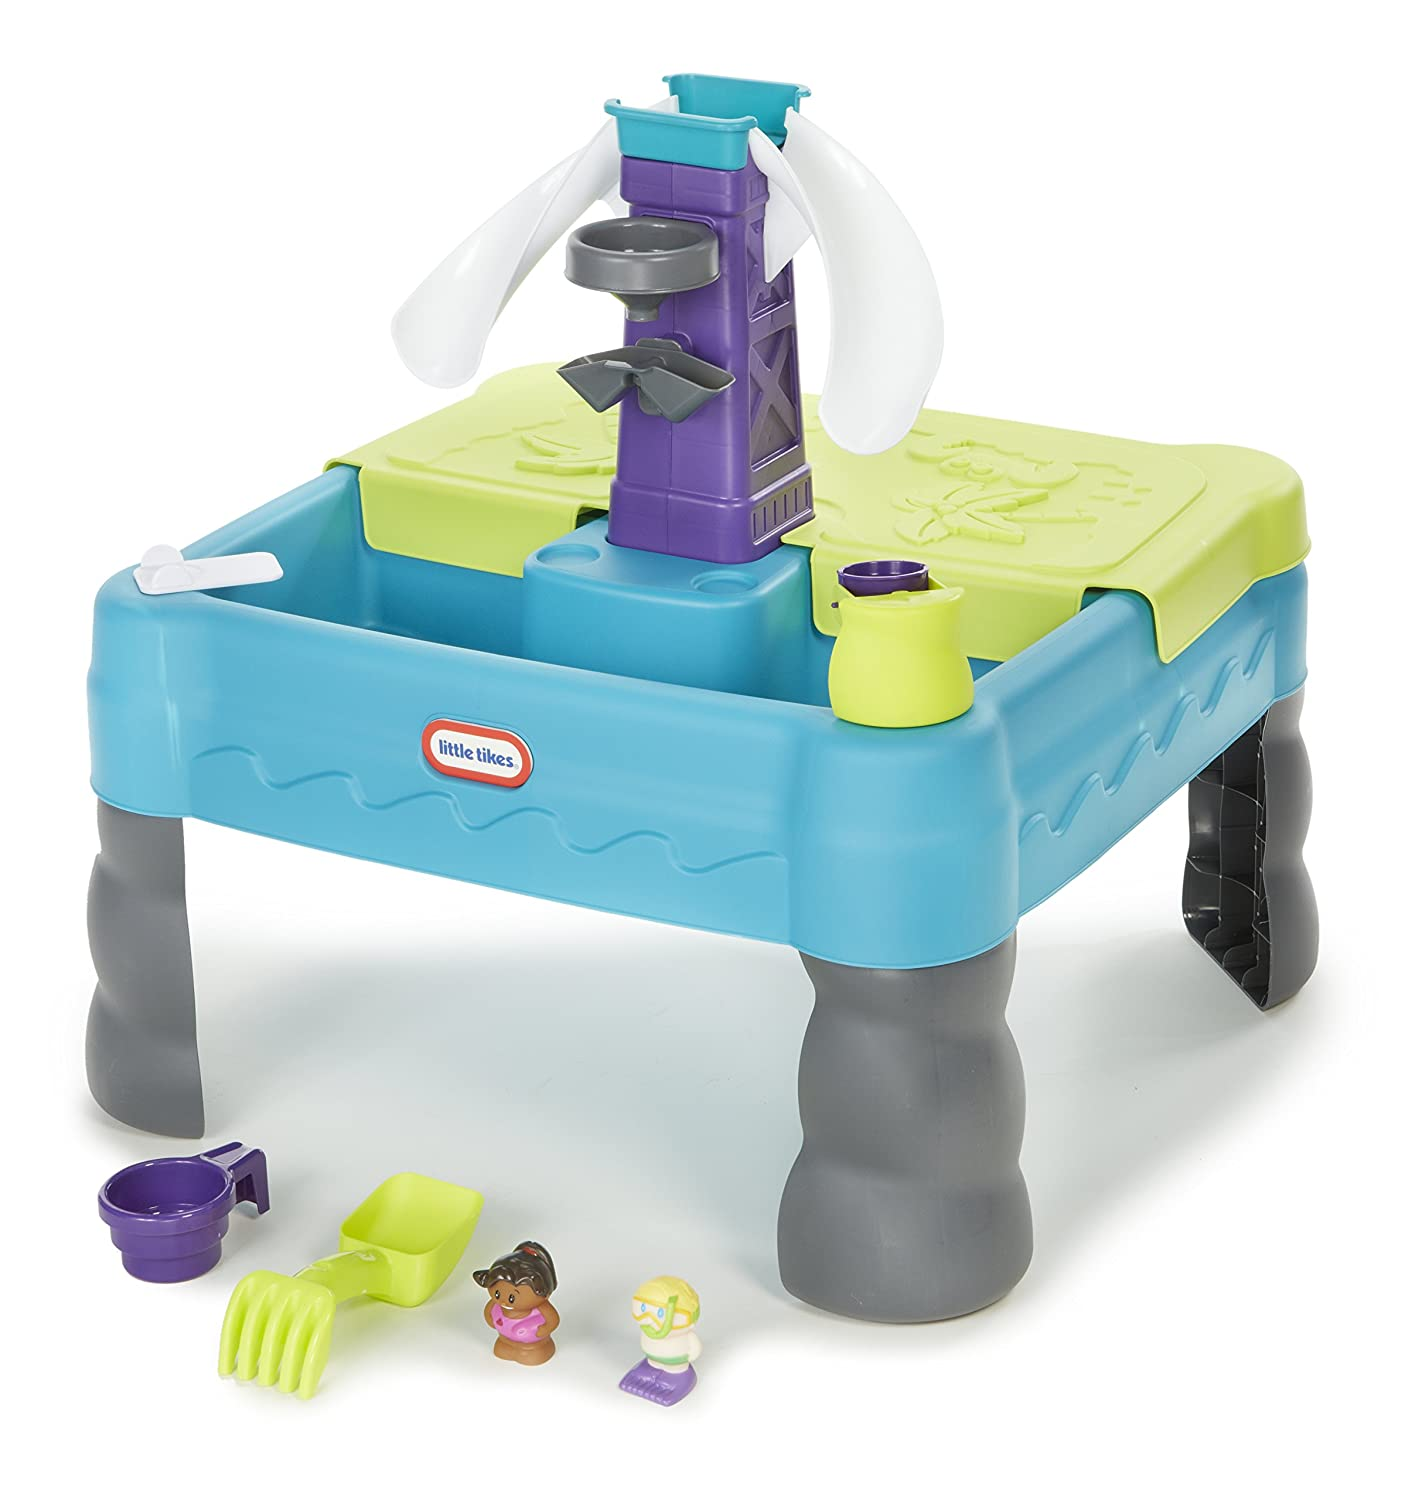 Amazon.com: Little Tikes Sandy Lagoon Waterpark Play Table, Teal ...